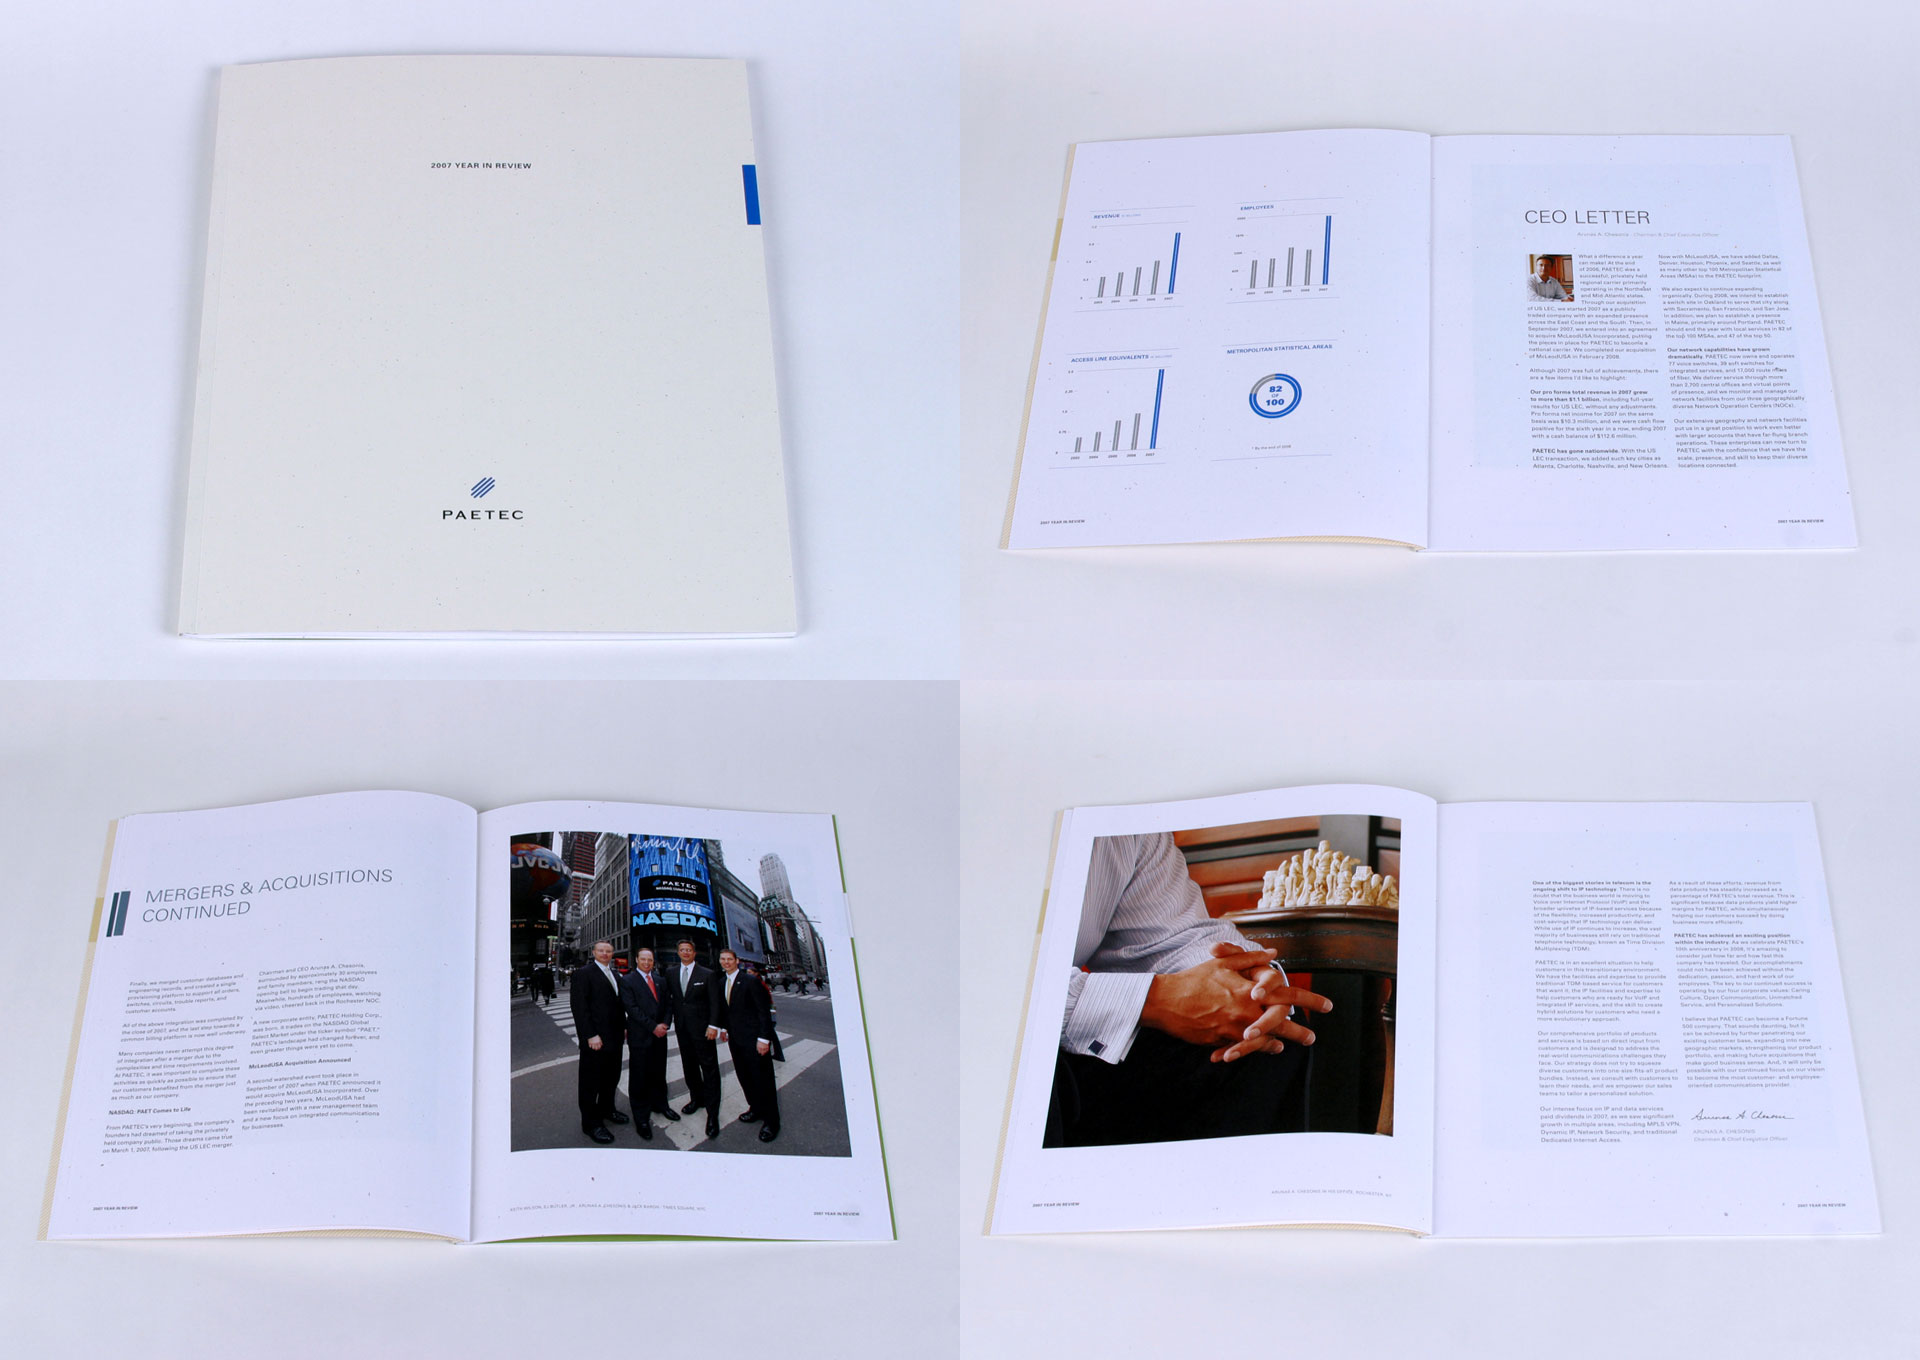 PAETEC Year in Review Book